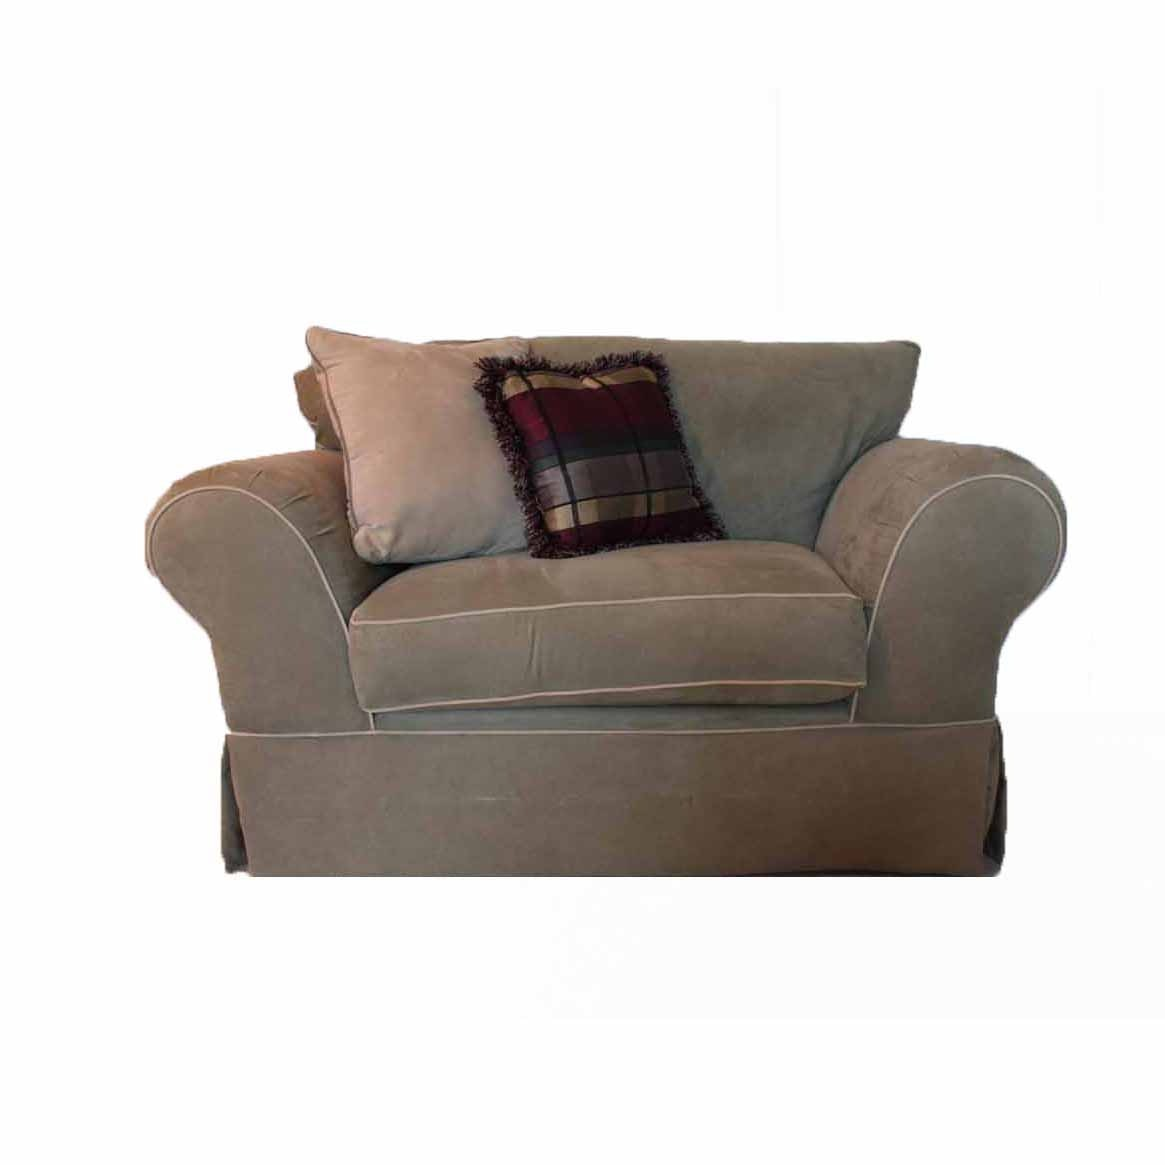 Sofa Express Oversized Lounge Chair EBTH